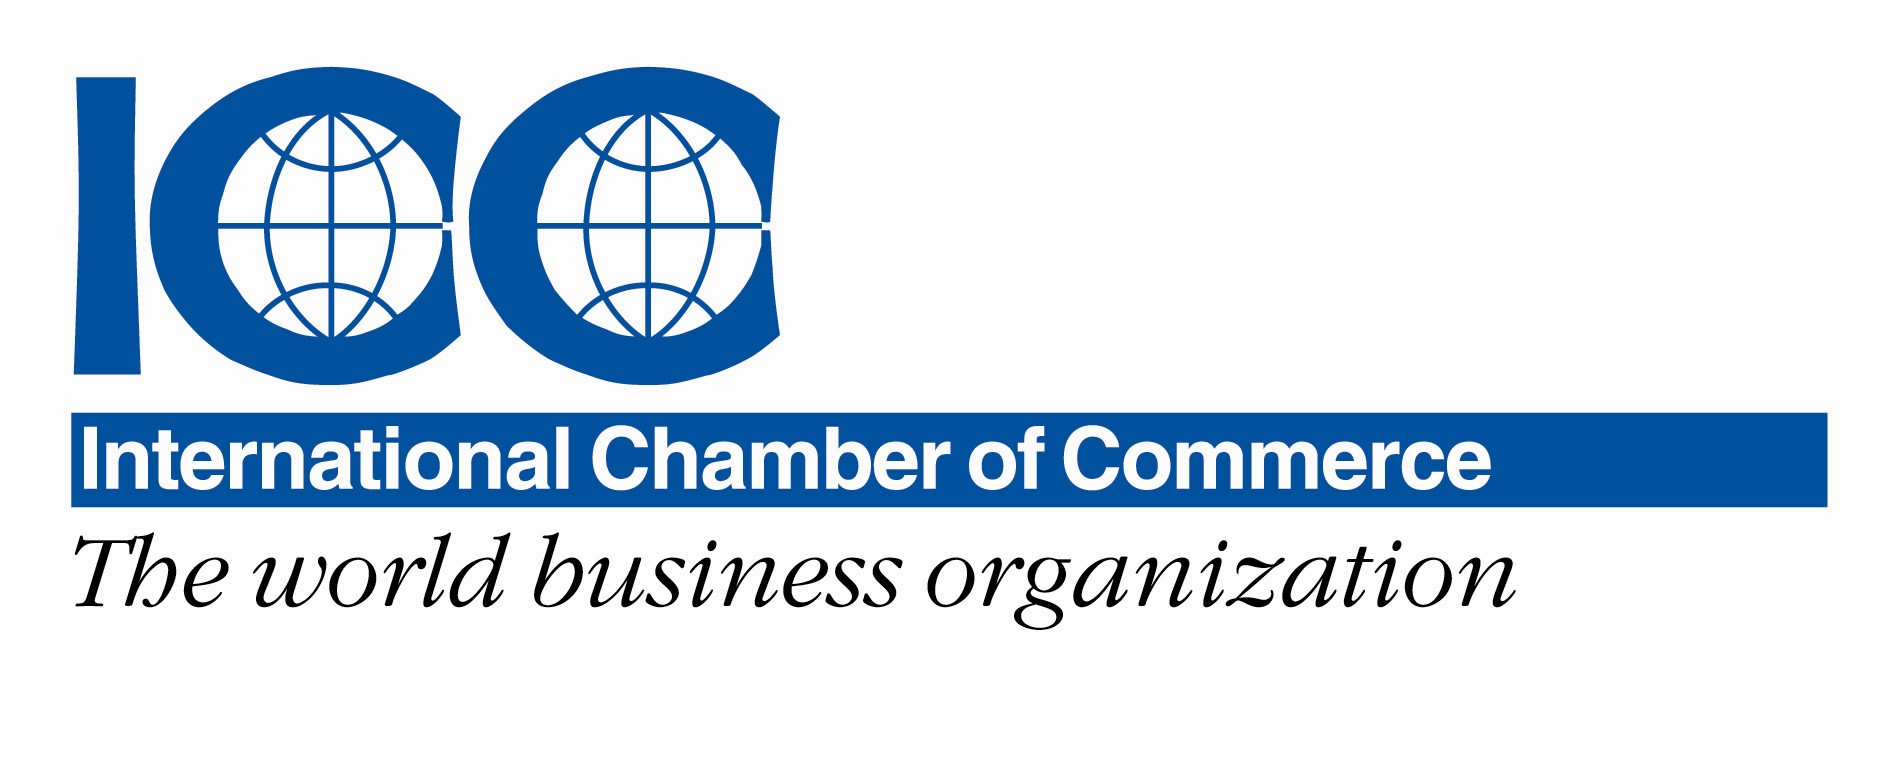 Opinions On International Chamber Of Commerce